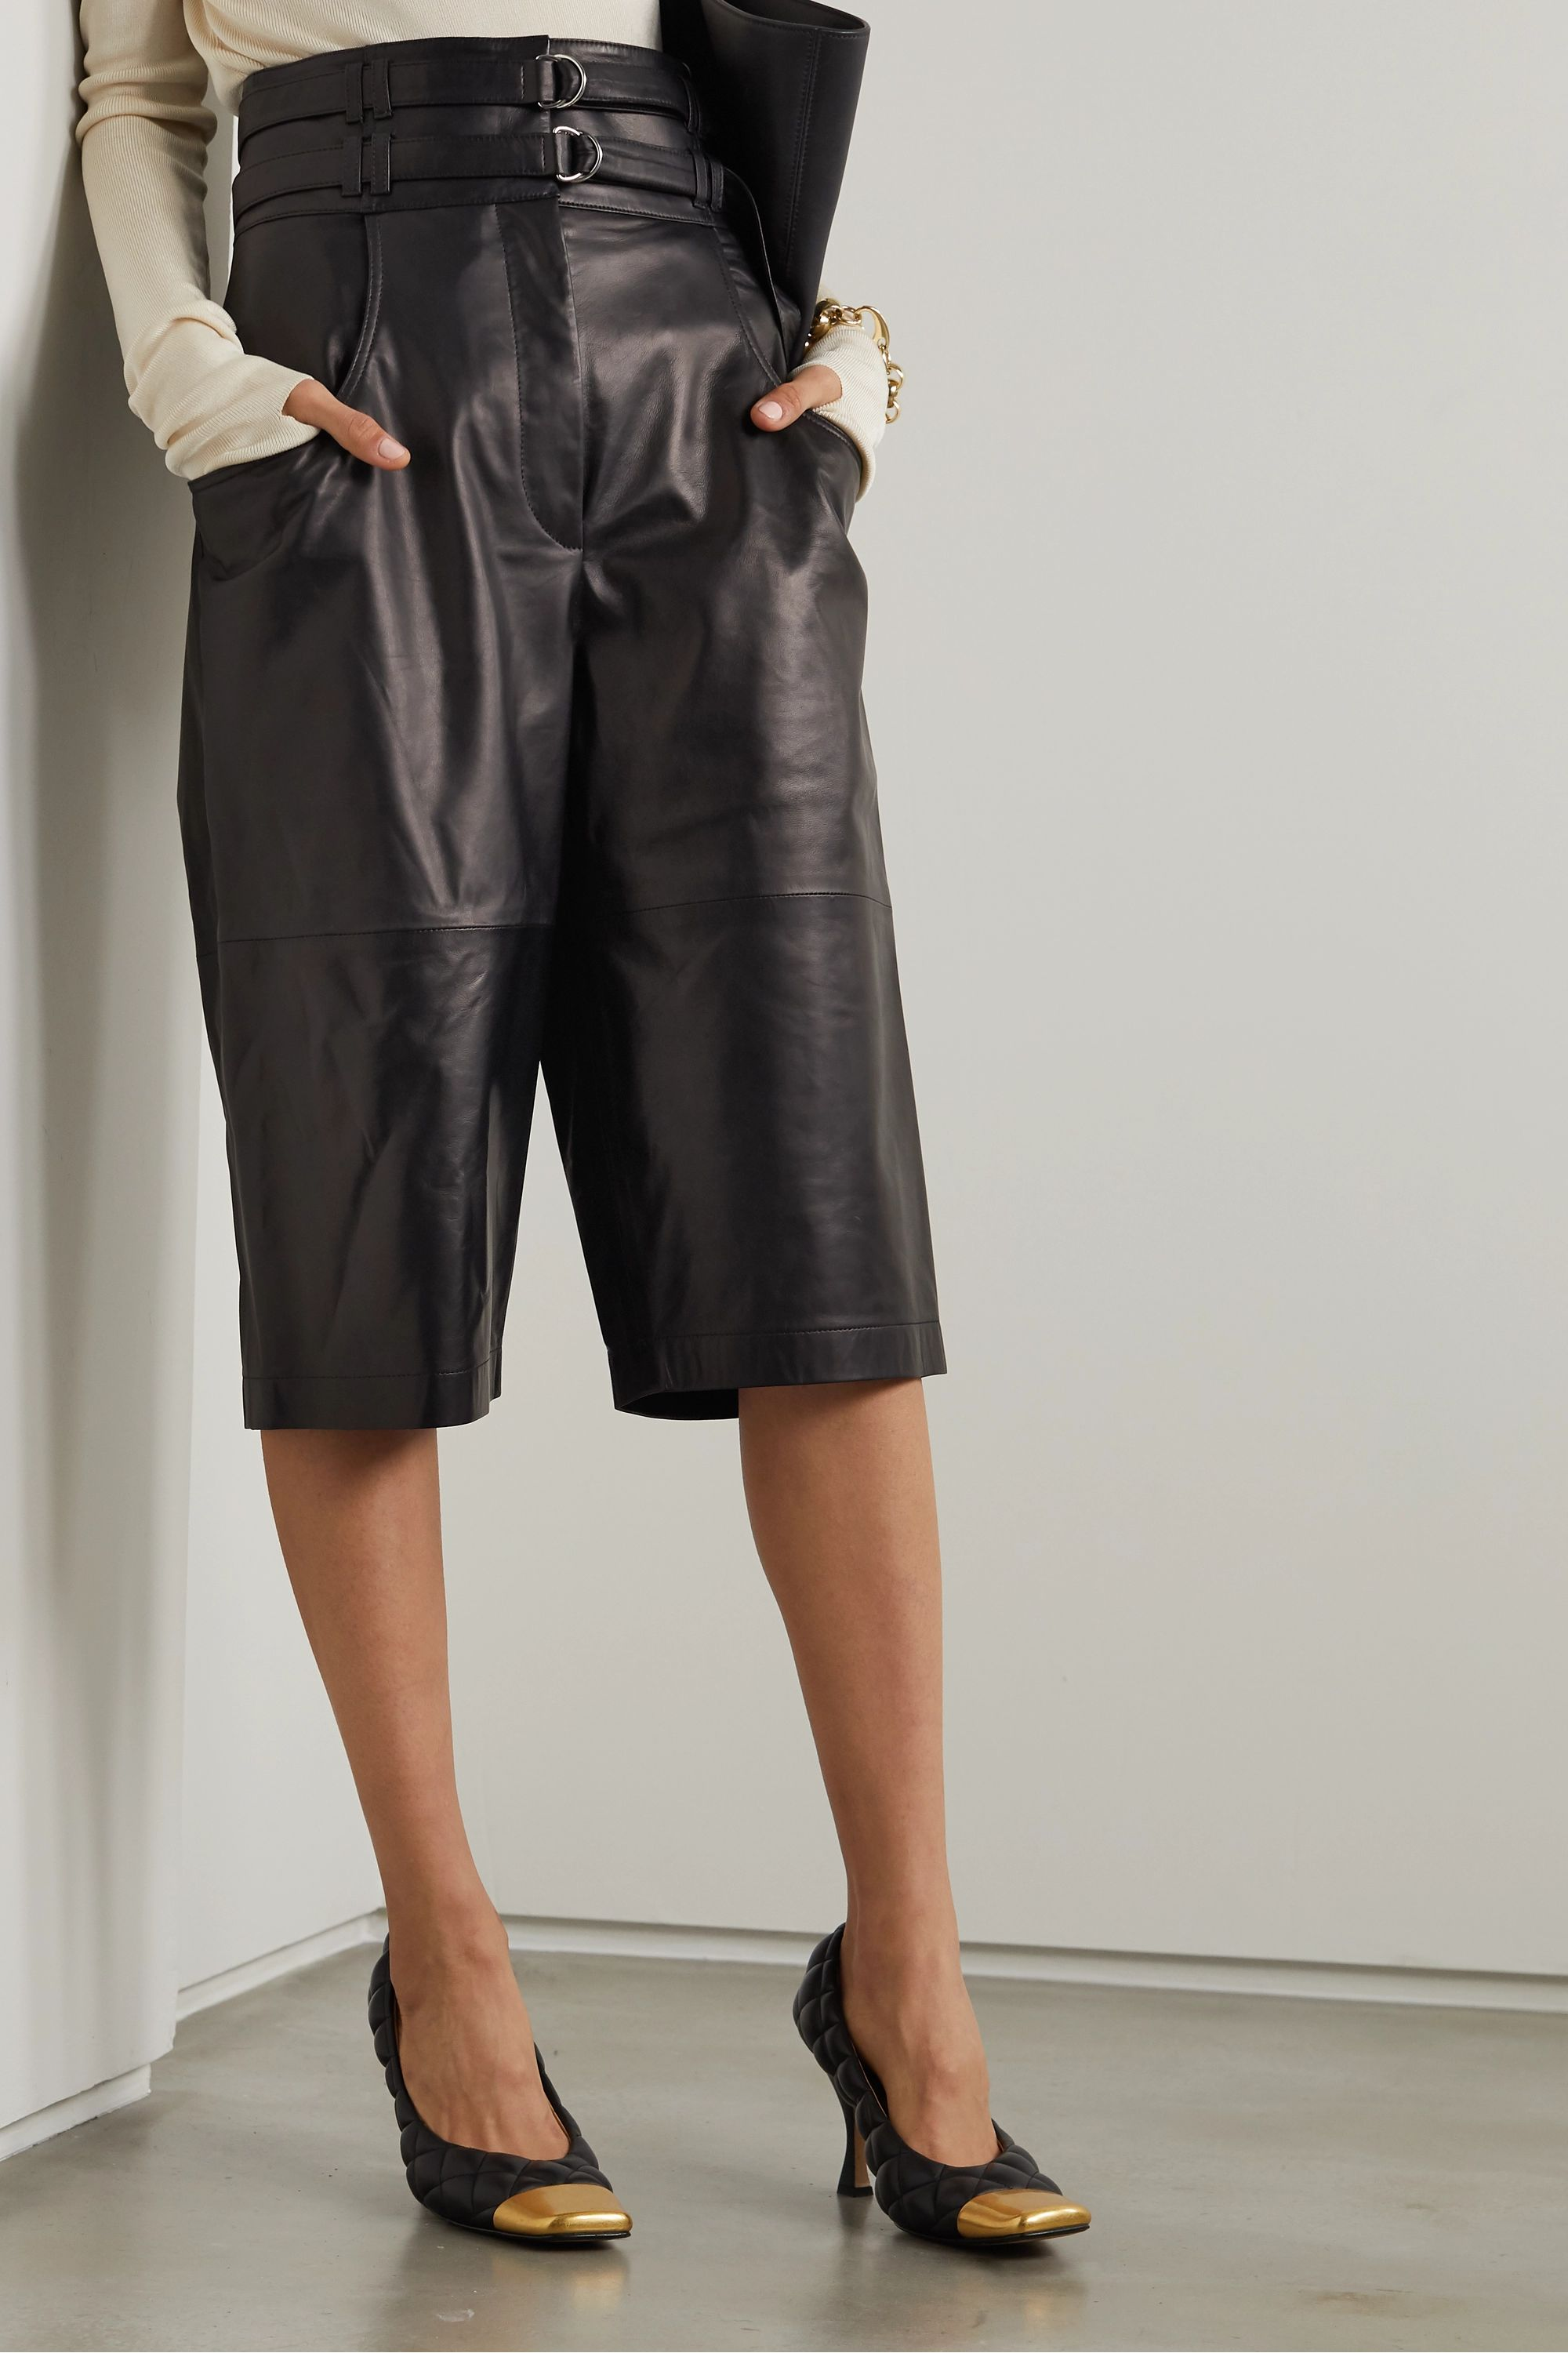 Proenza Schouler Belted leather shorts